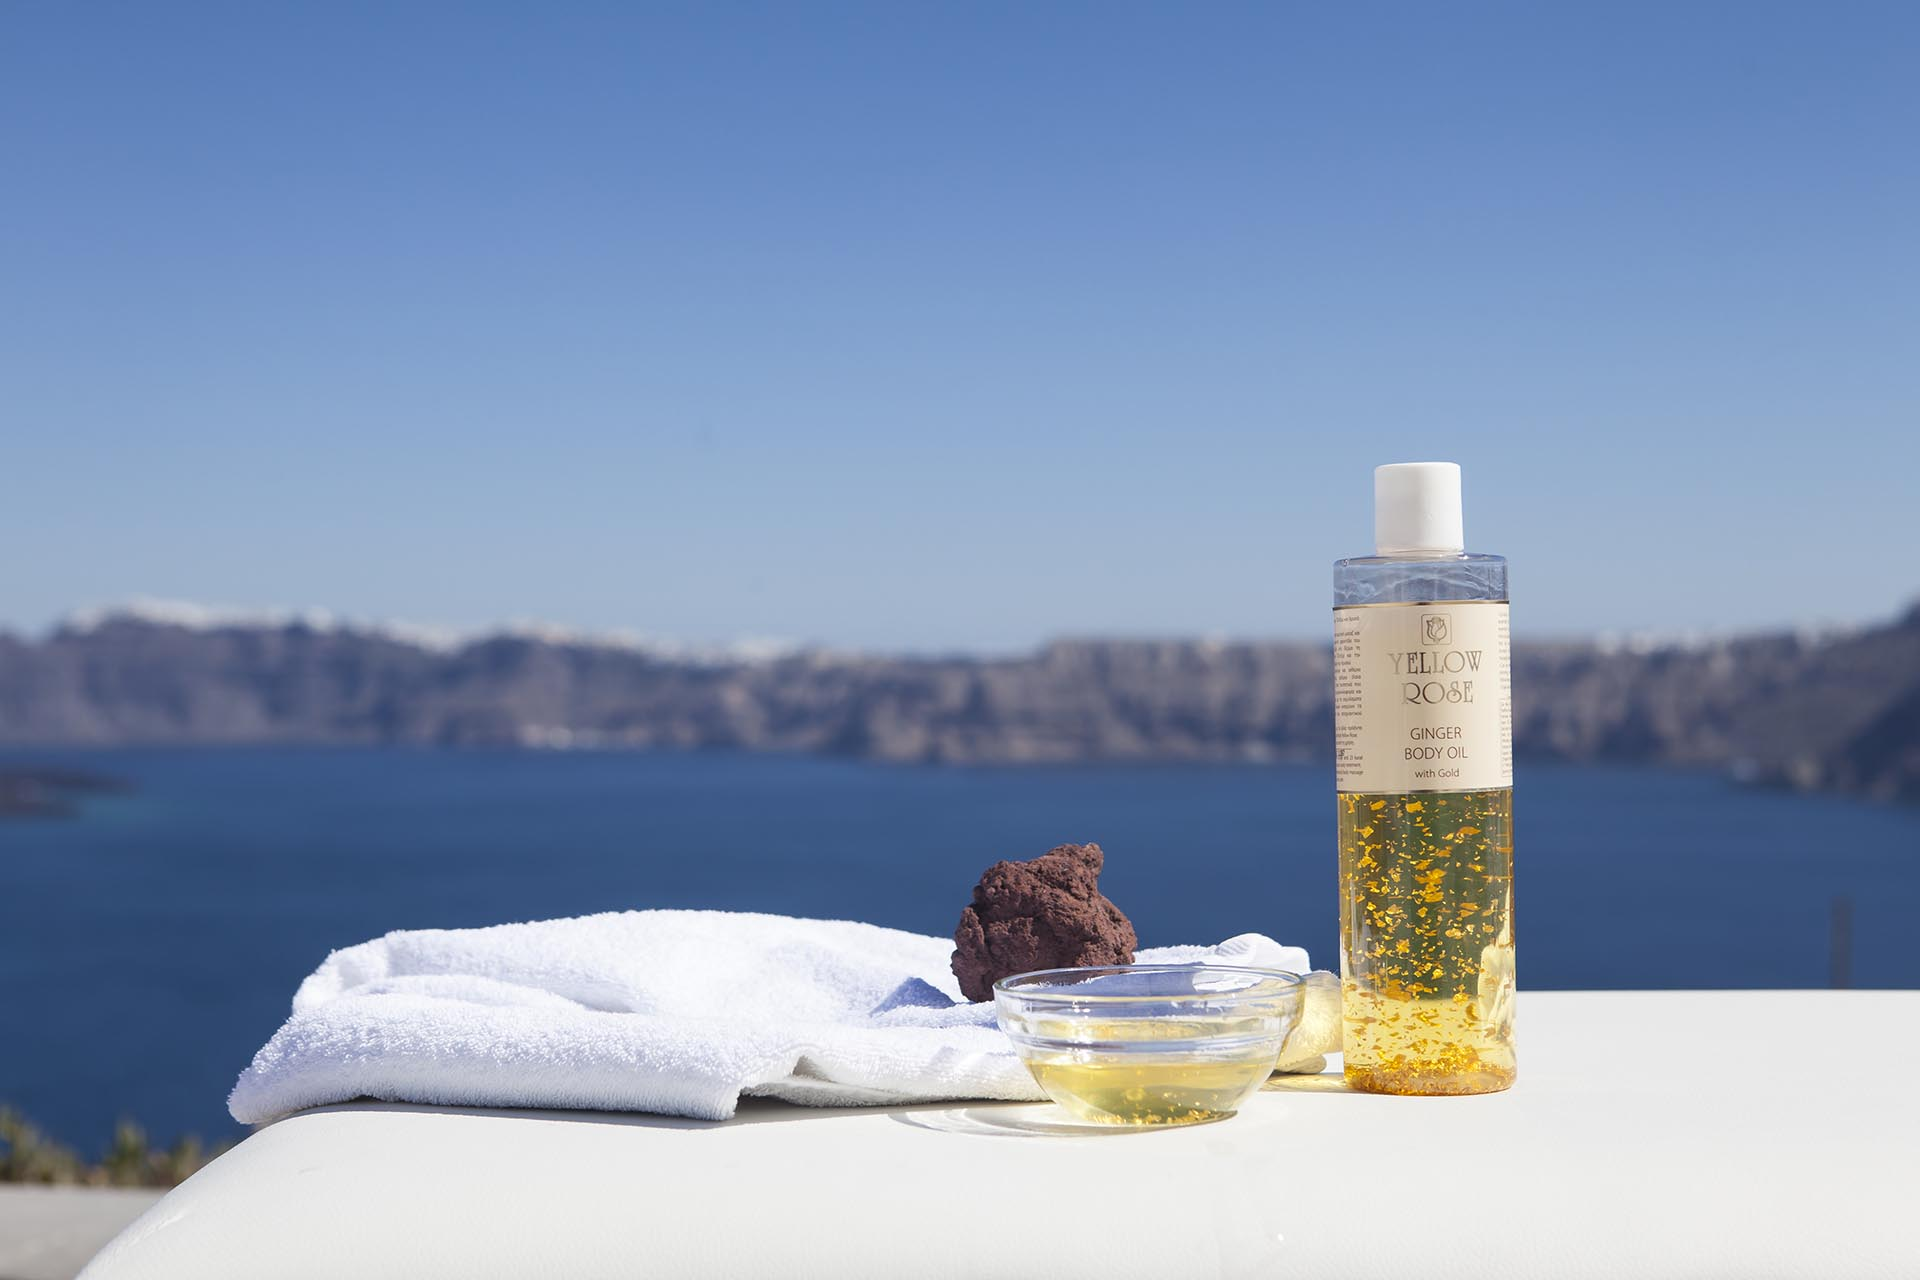 Kalestesia Suites - Essential oils for spa treatments